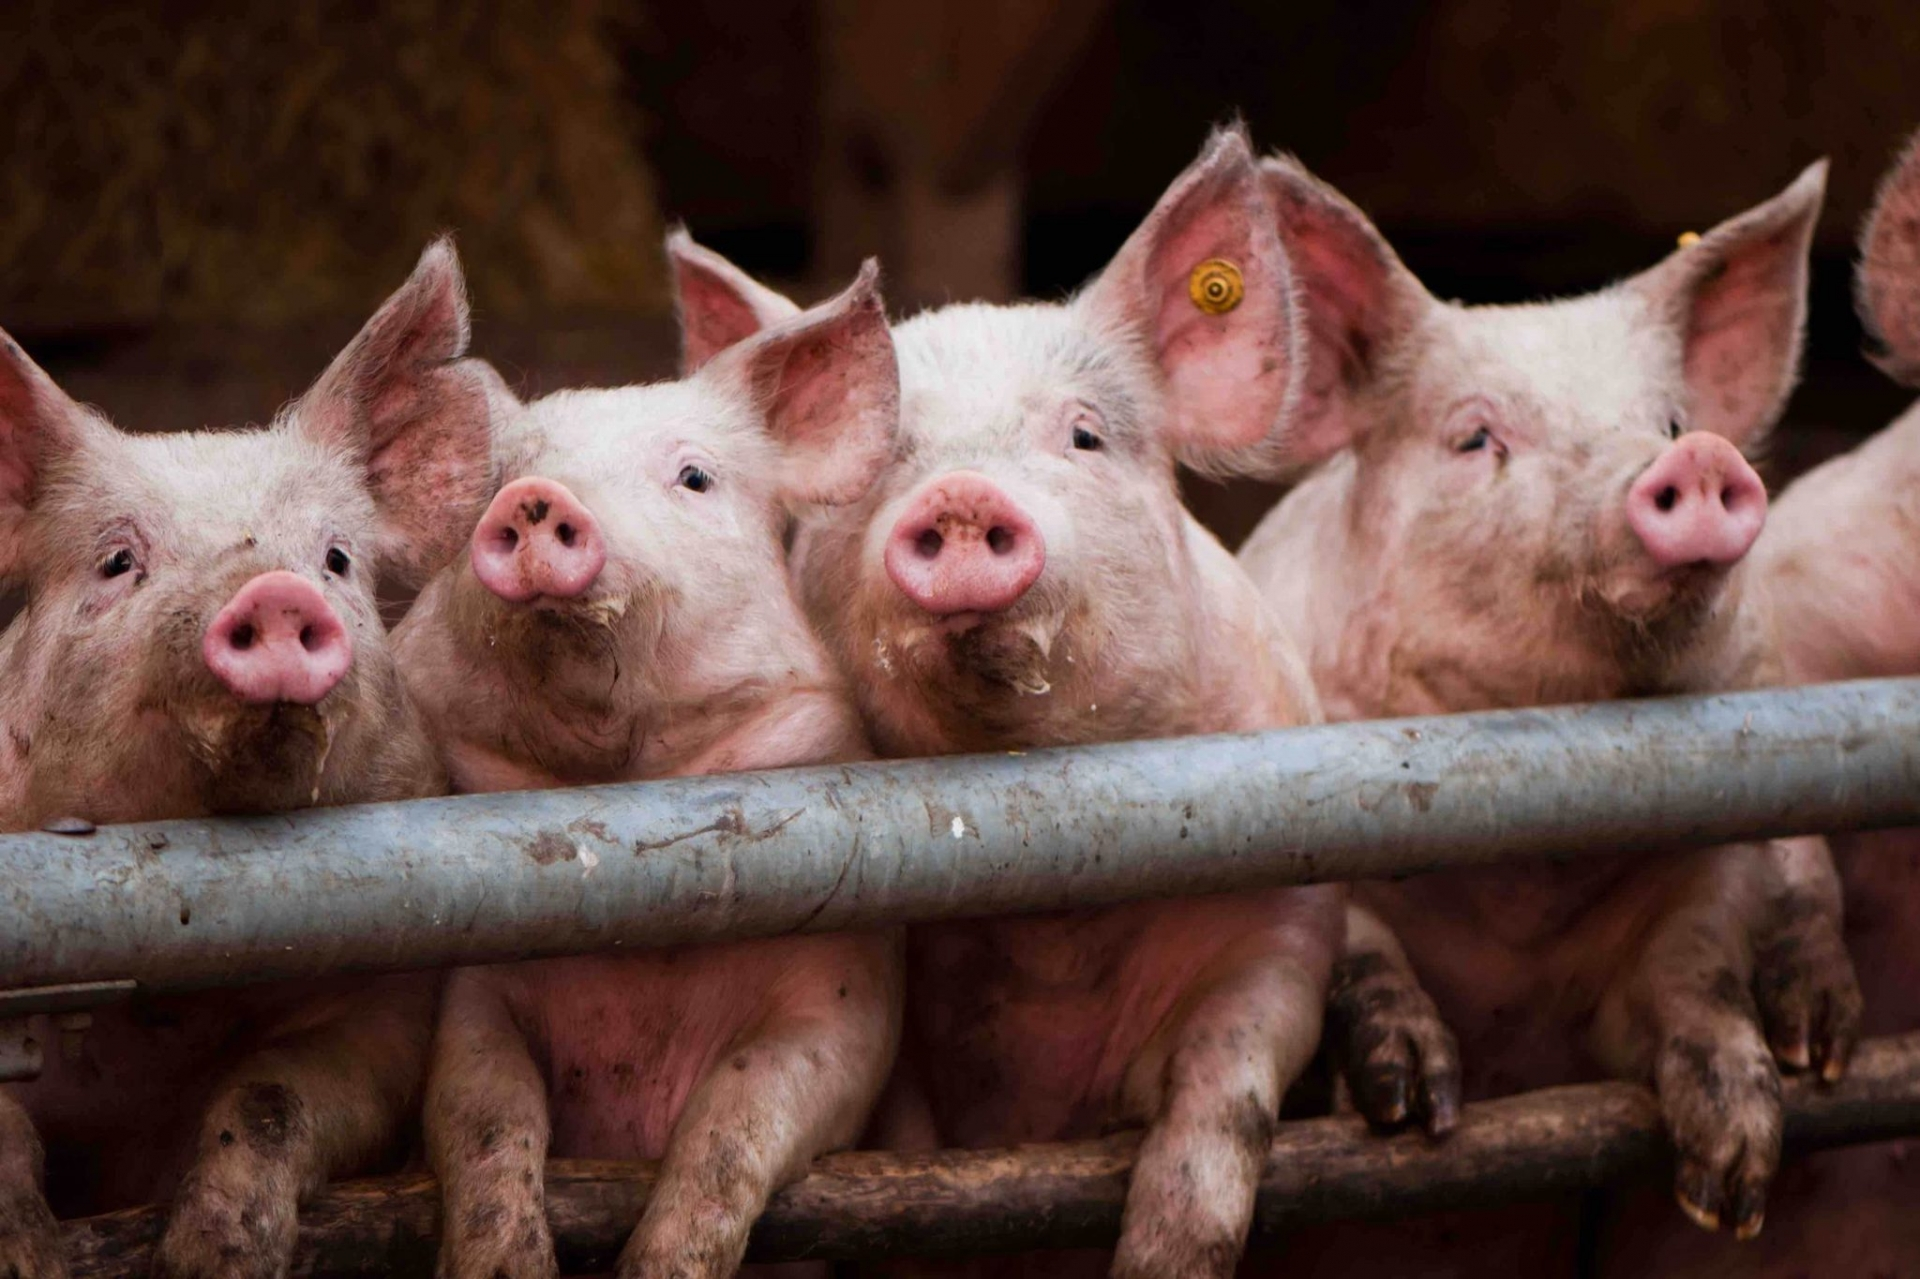 Live hog price today 11/10: Simultaneously slowed down across 3 regions 1